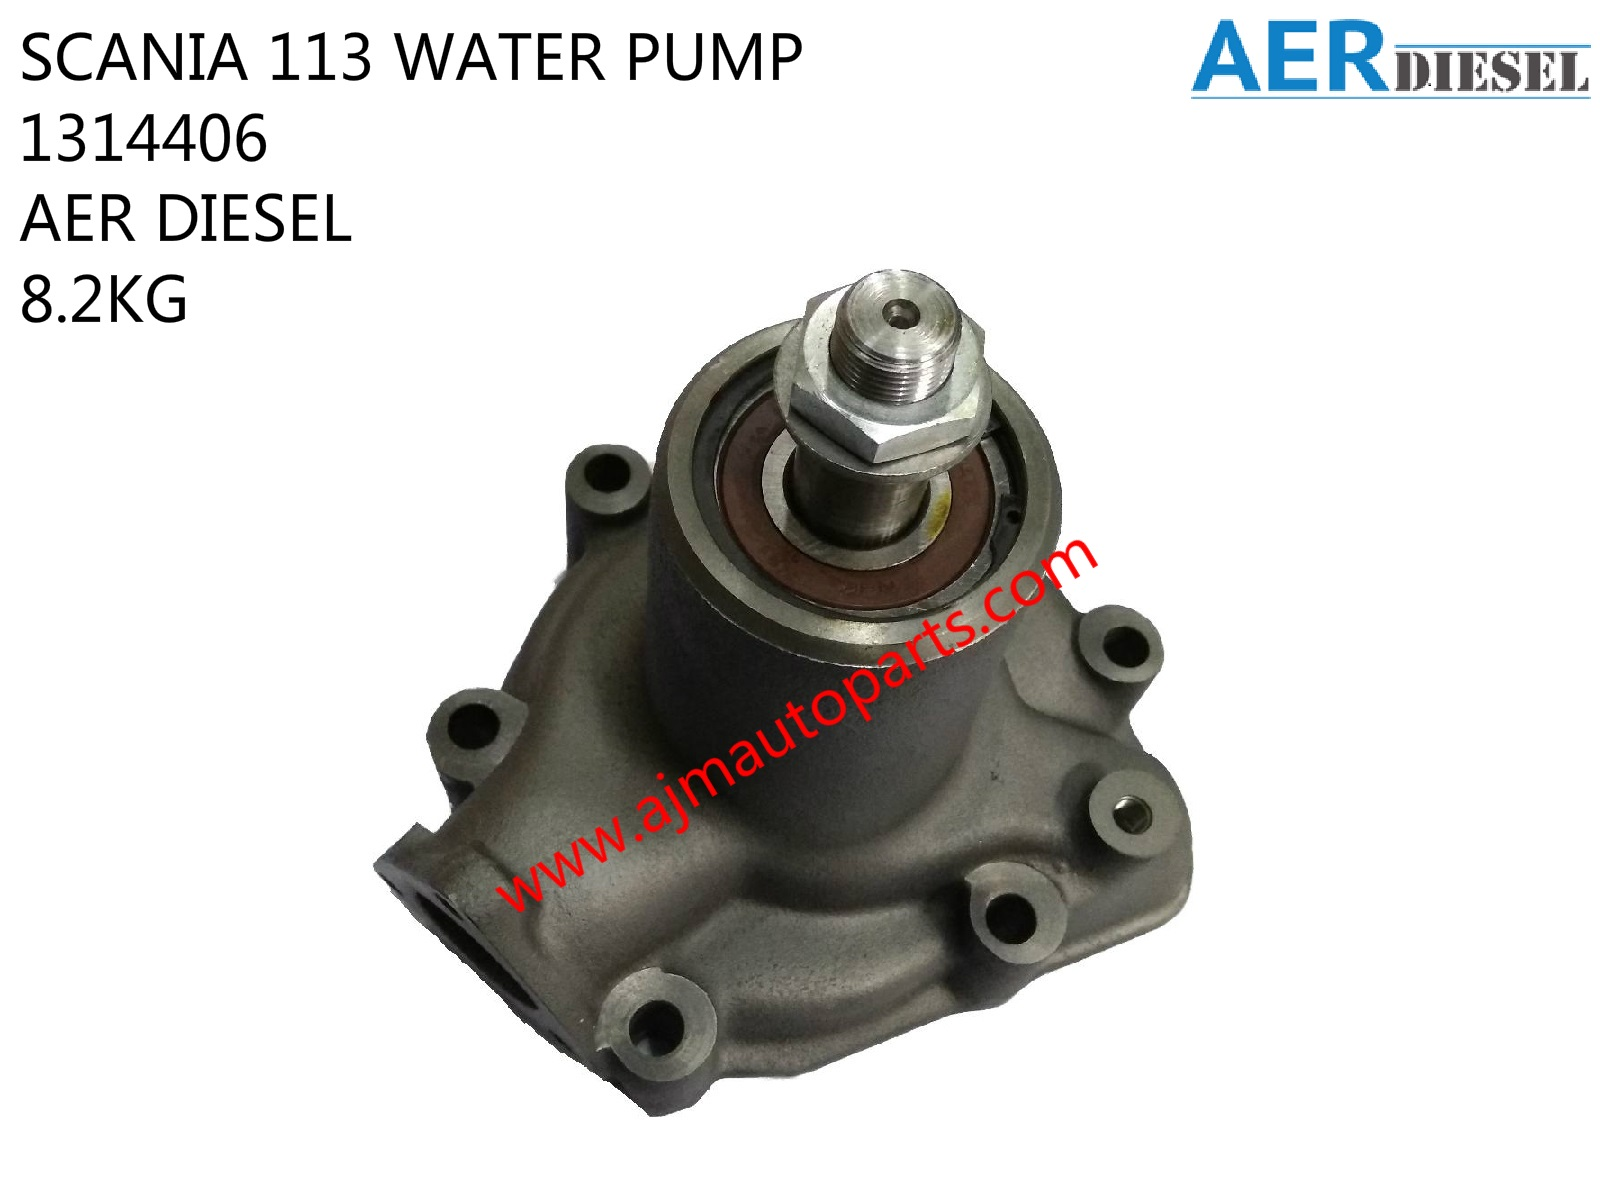 SCANIA 113 WATER PUMP-1314406